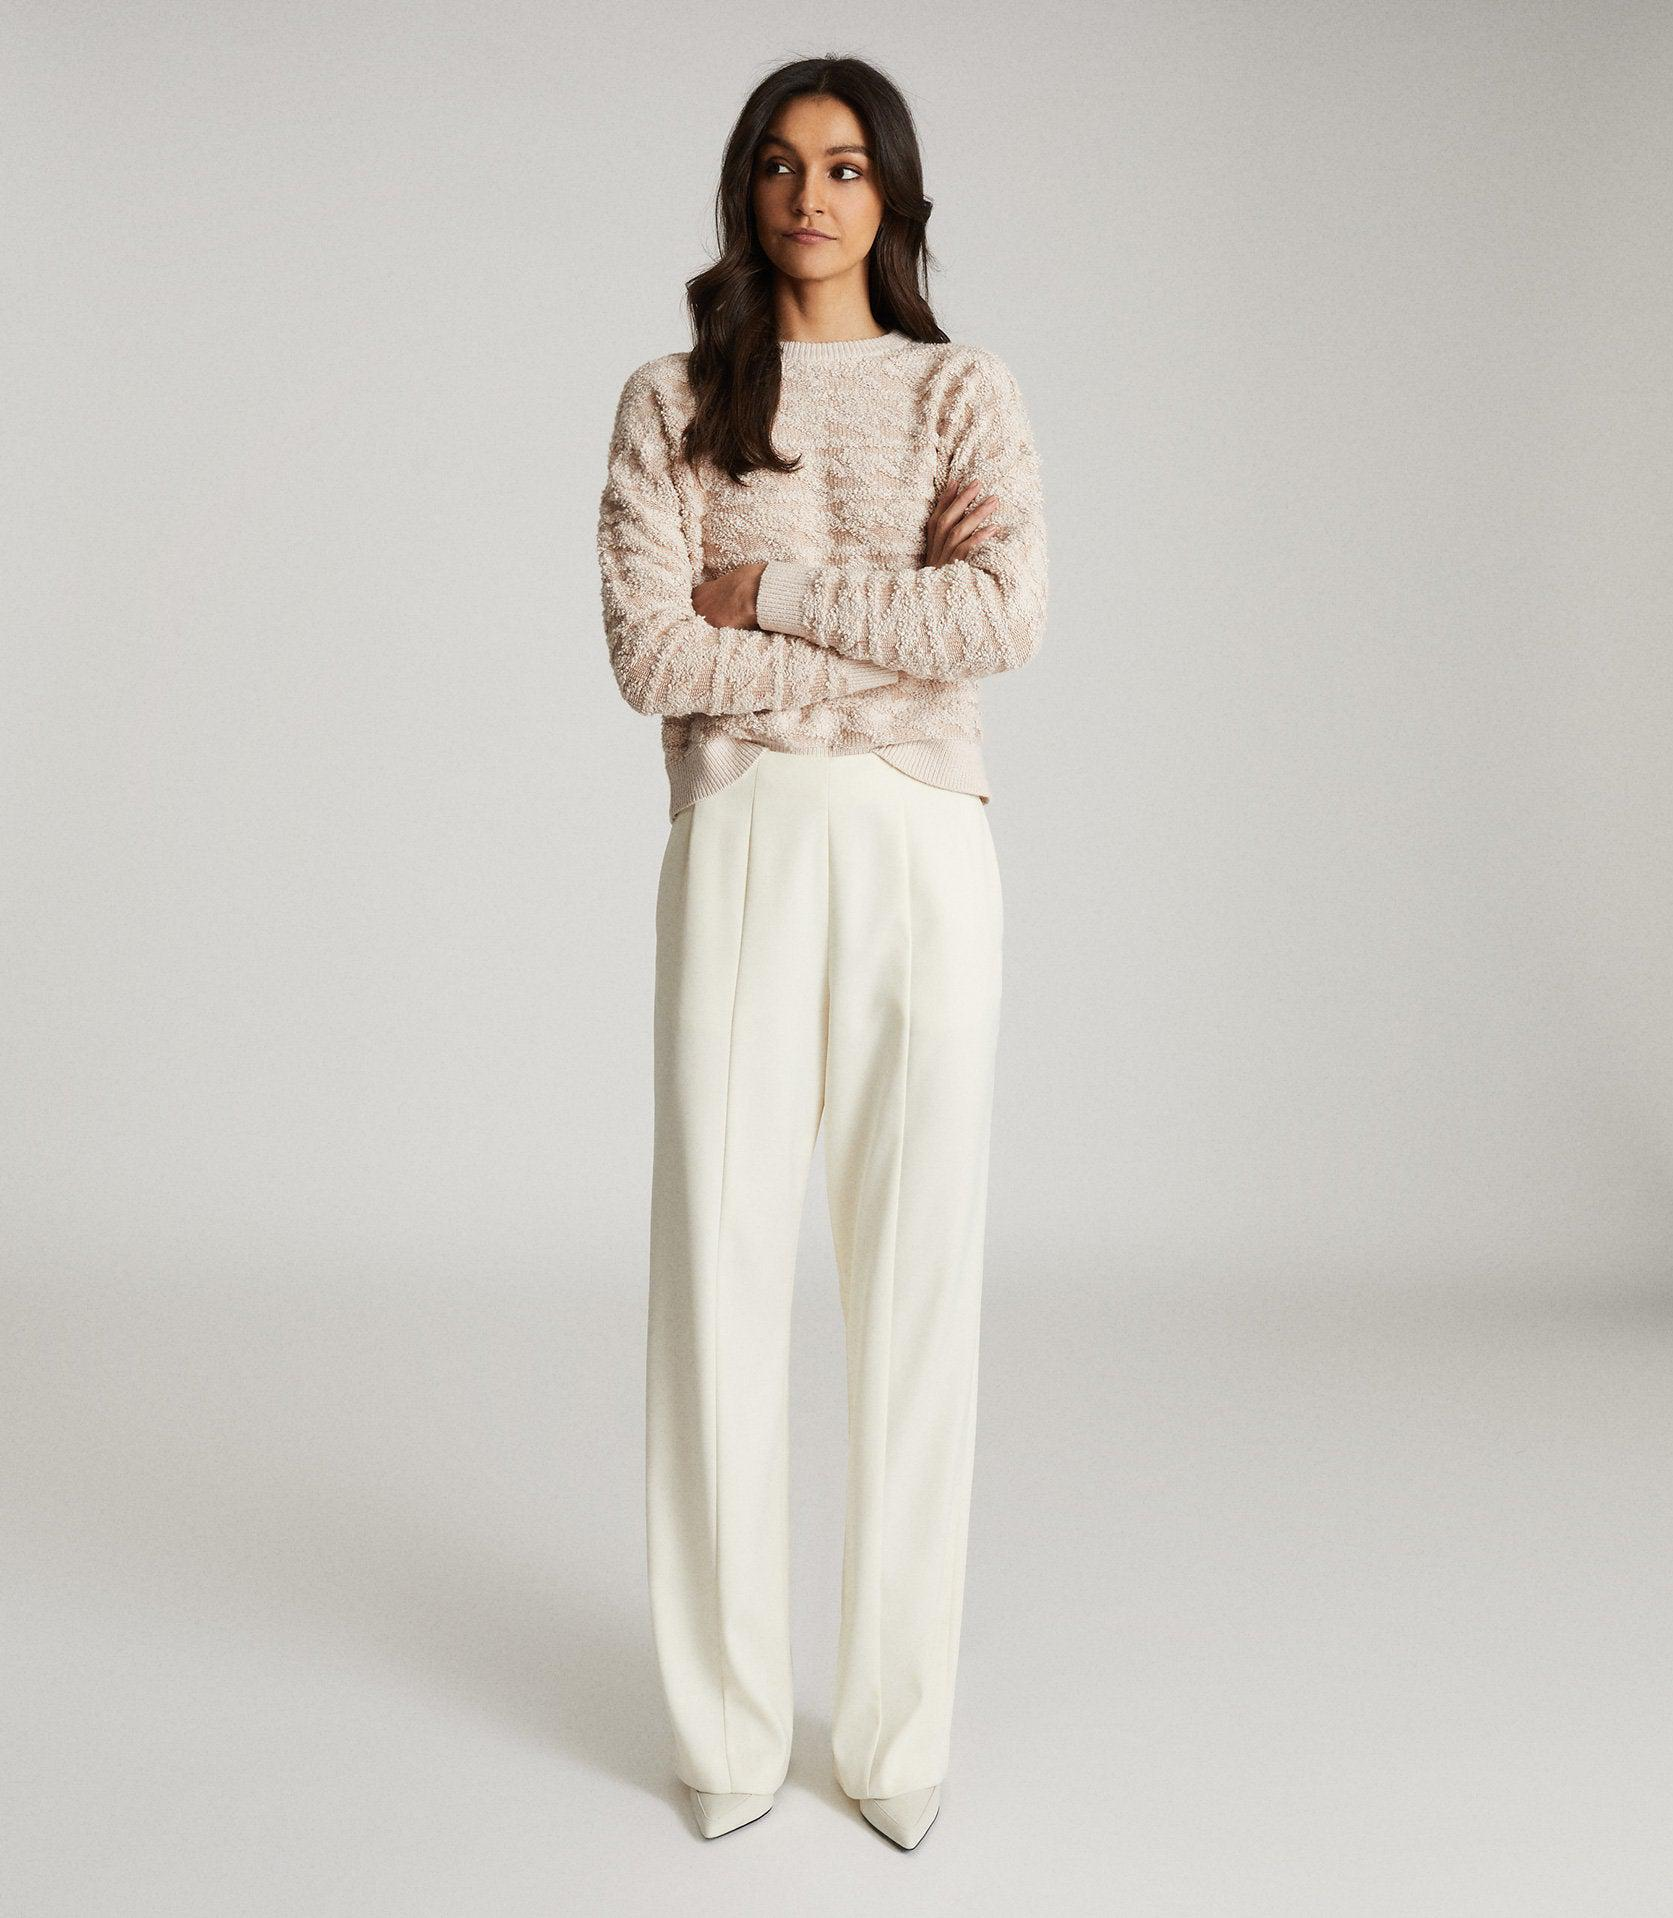 OTTO - TEXTURED PATTERNED JUMPER